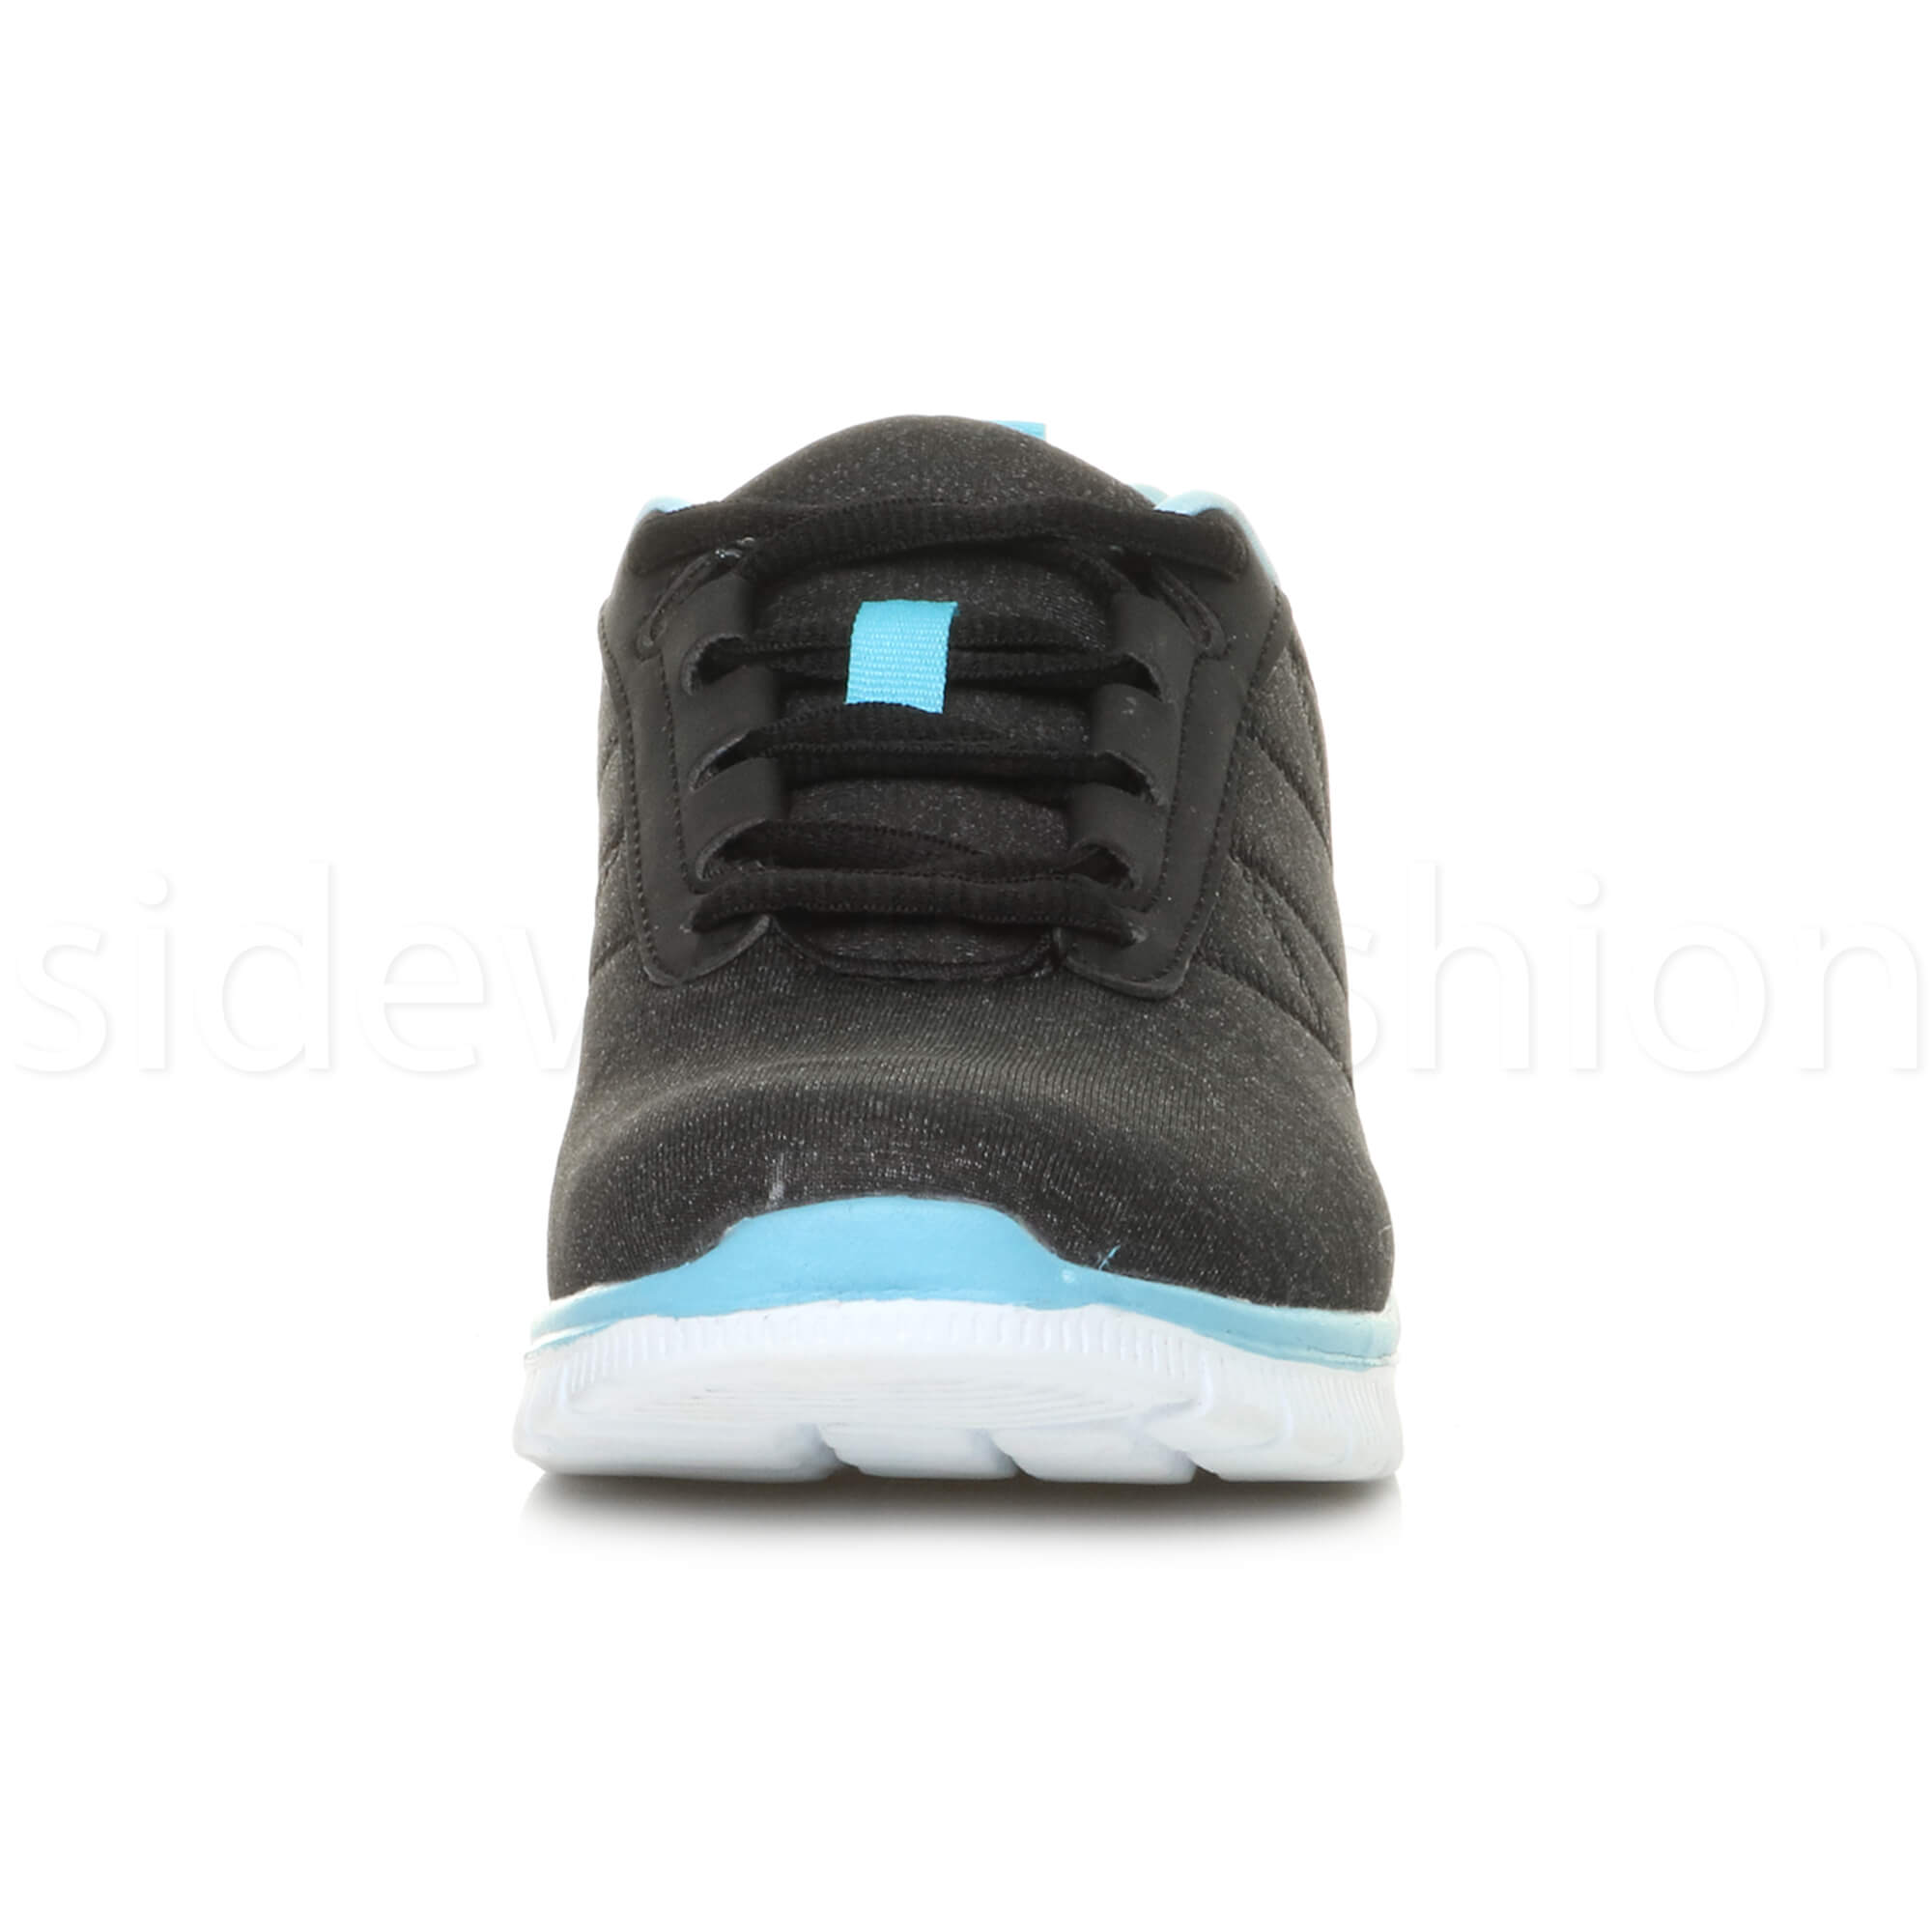 Womens-ladies-comfort-memory-foam-lace-up-trainers-activewear-sneakers-gym-shoes thumbnail 13